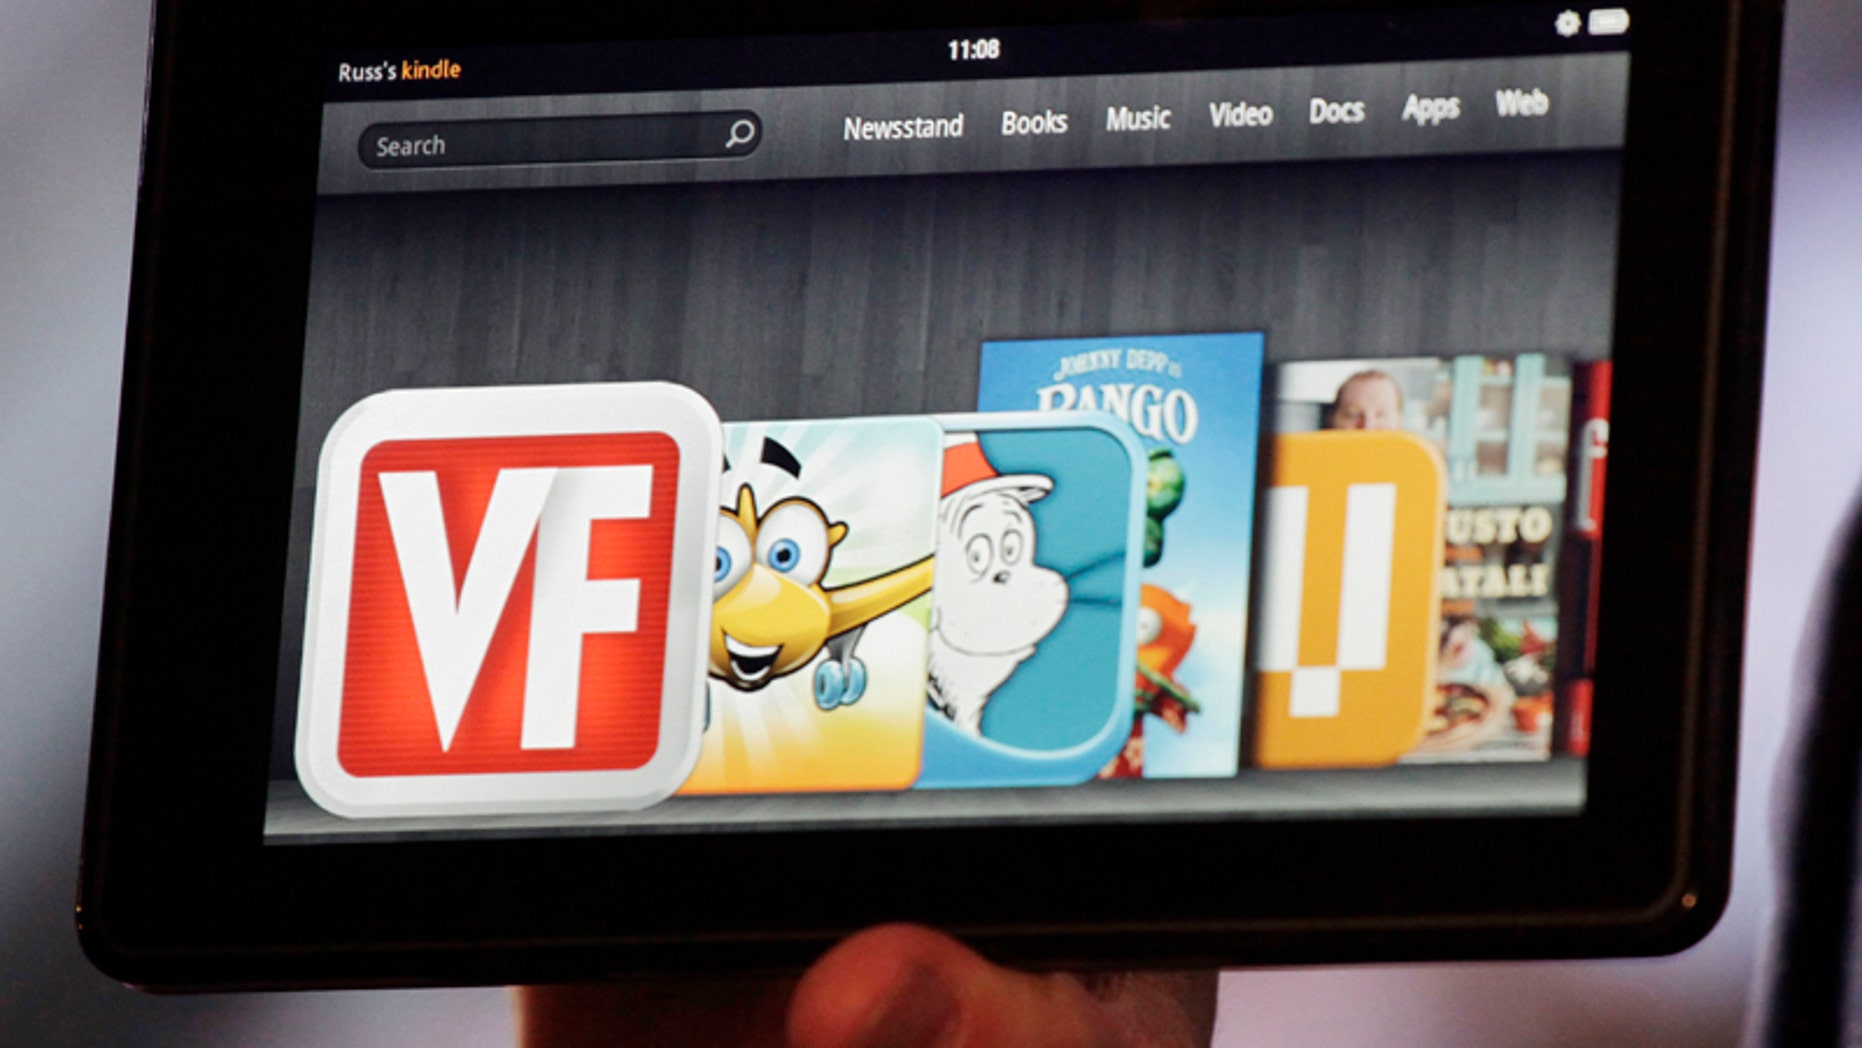 Sept. 28, 2011: The Kindle Fire is shown at a news conference in New York. The e-reader and tablet has a 7-inch multicolor touchscreen and sells for $199.